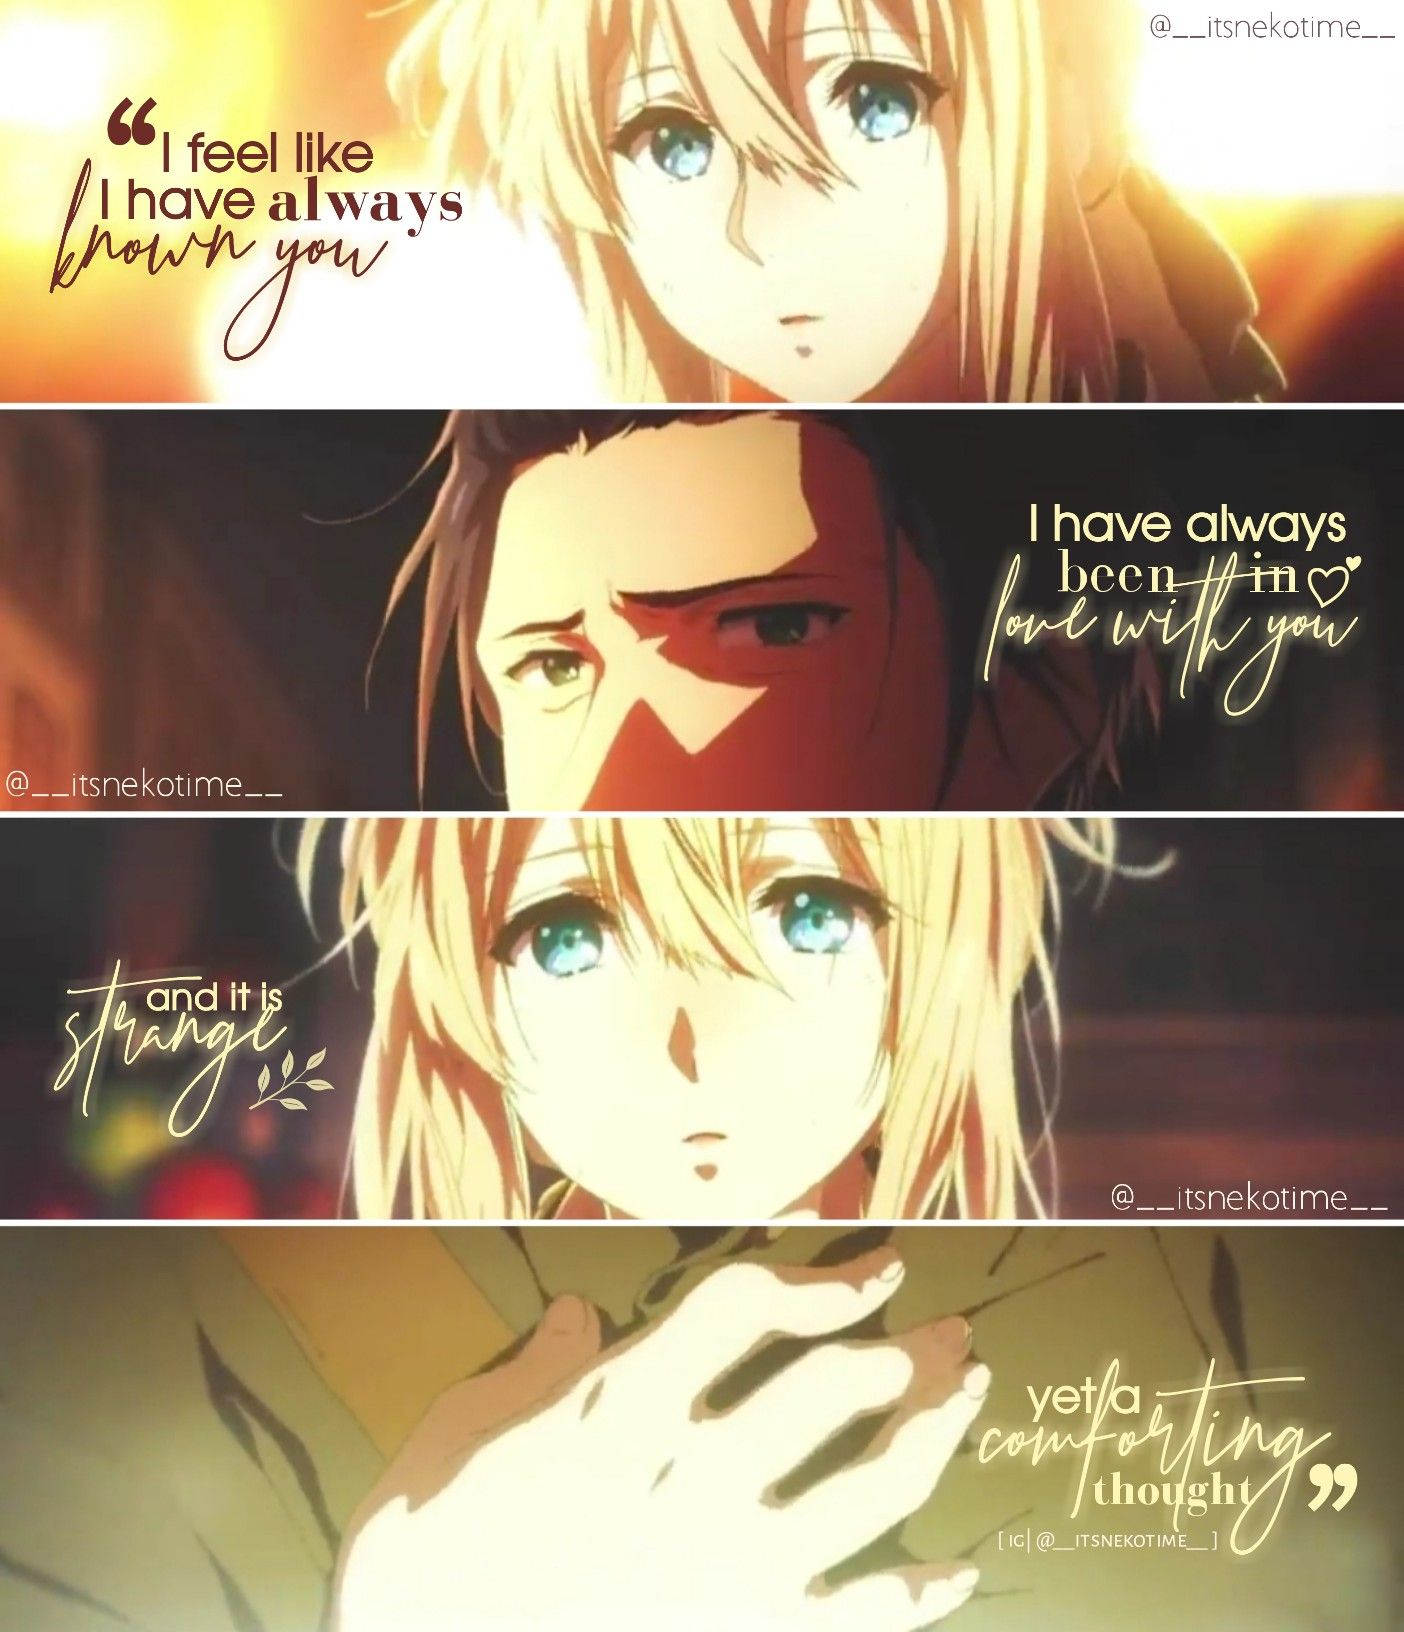 Anime edits in 2020 | Be yourself quotes, Anime, Feelings